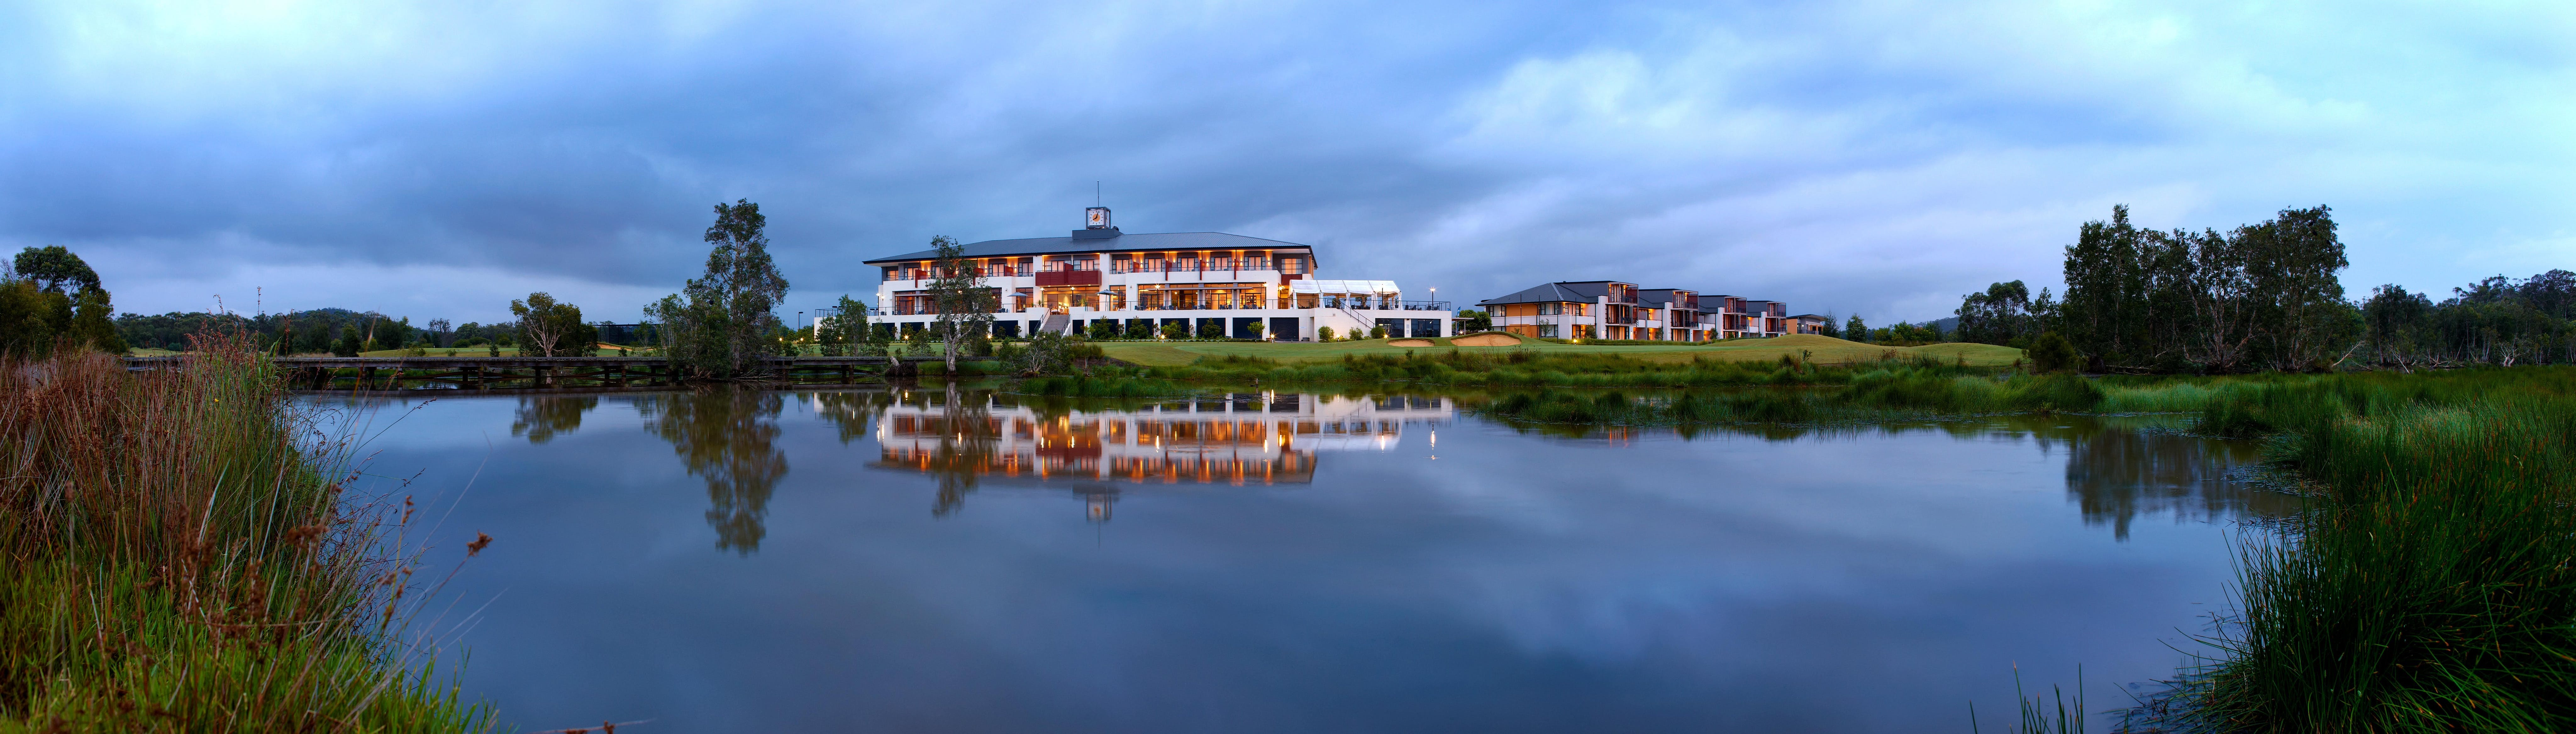 Mercure Kooindah Waters Central Coast - Accommodation in Bendigo